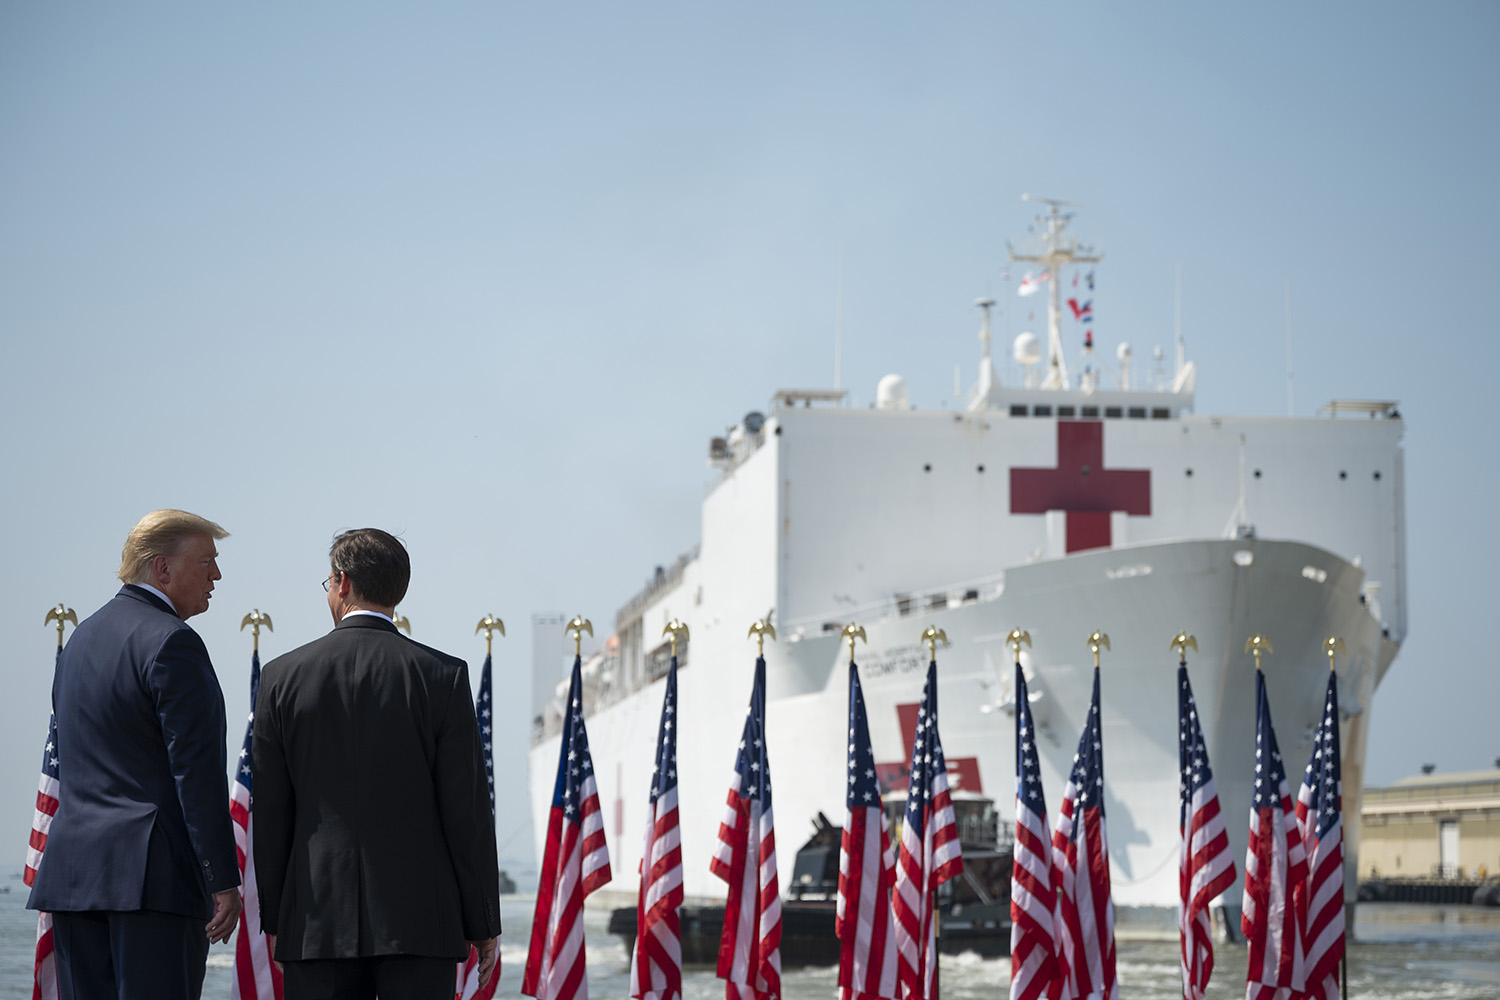 U.S. Defense Secretary Mark Esper (right) and President Donald Trump watch as the U.S. Navy hospital ship Comfort departs Naval Base Norfolk in Virginia on March 28. The Comfort was sailing to New York City to aid in the coronavirus outbreak. JIM WATSON/AFP via Getty Images